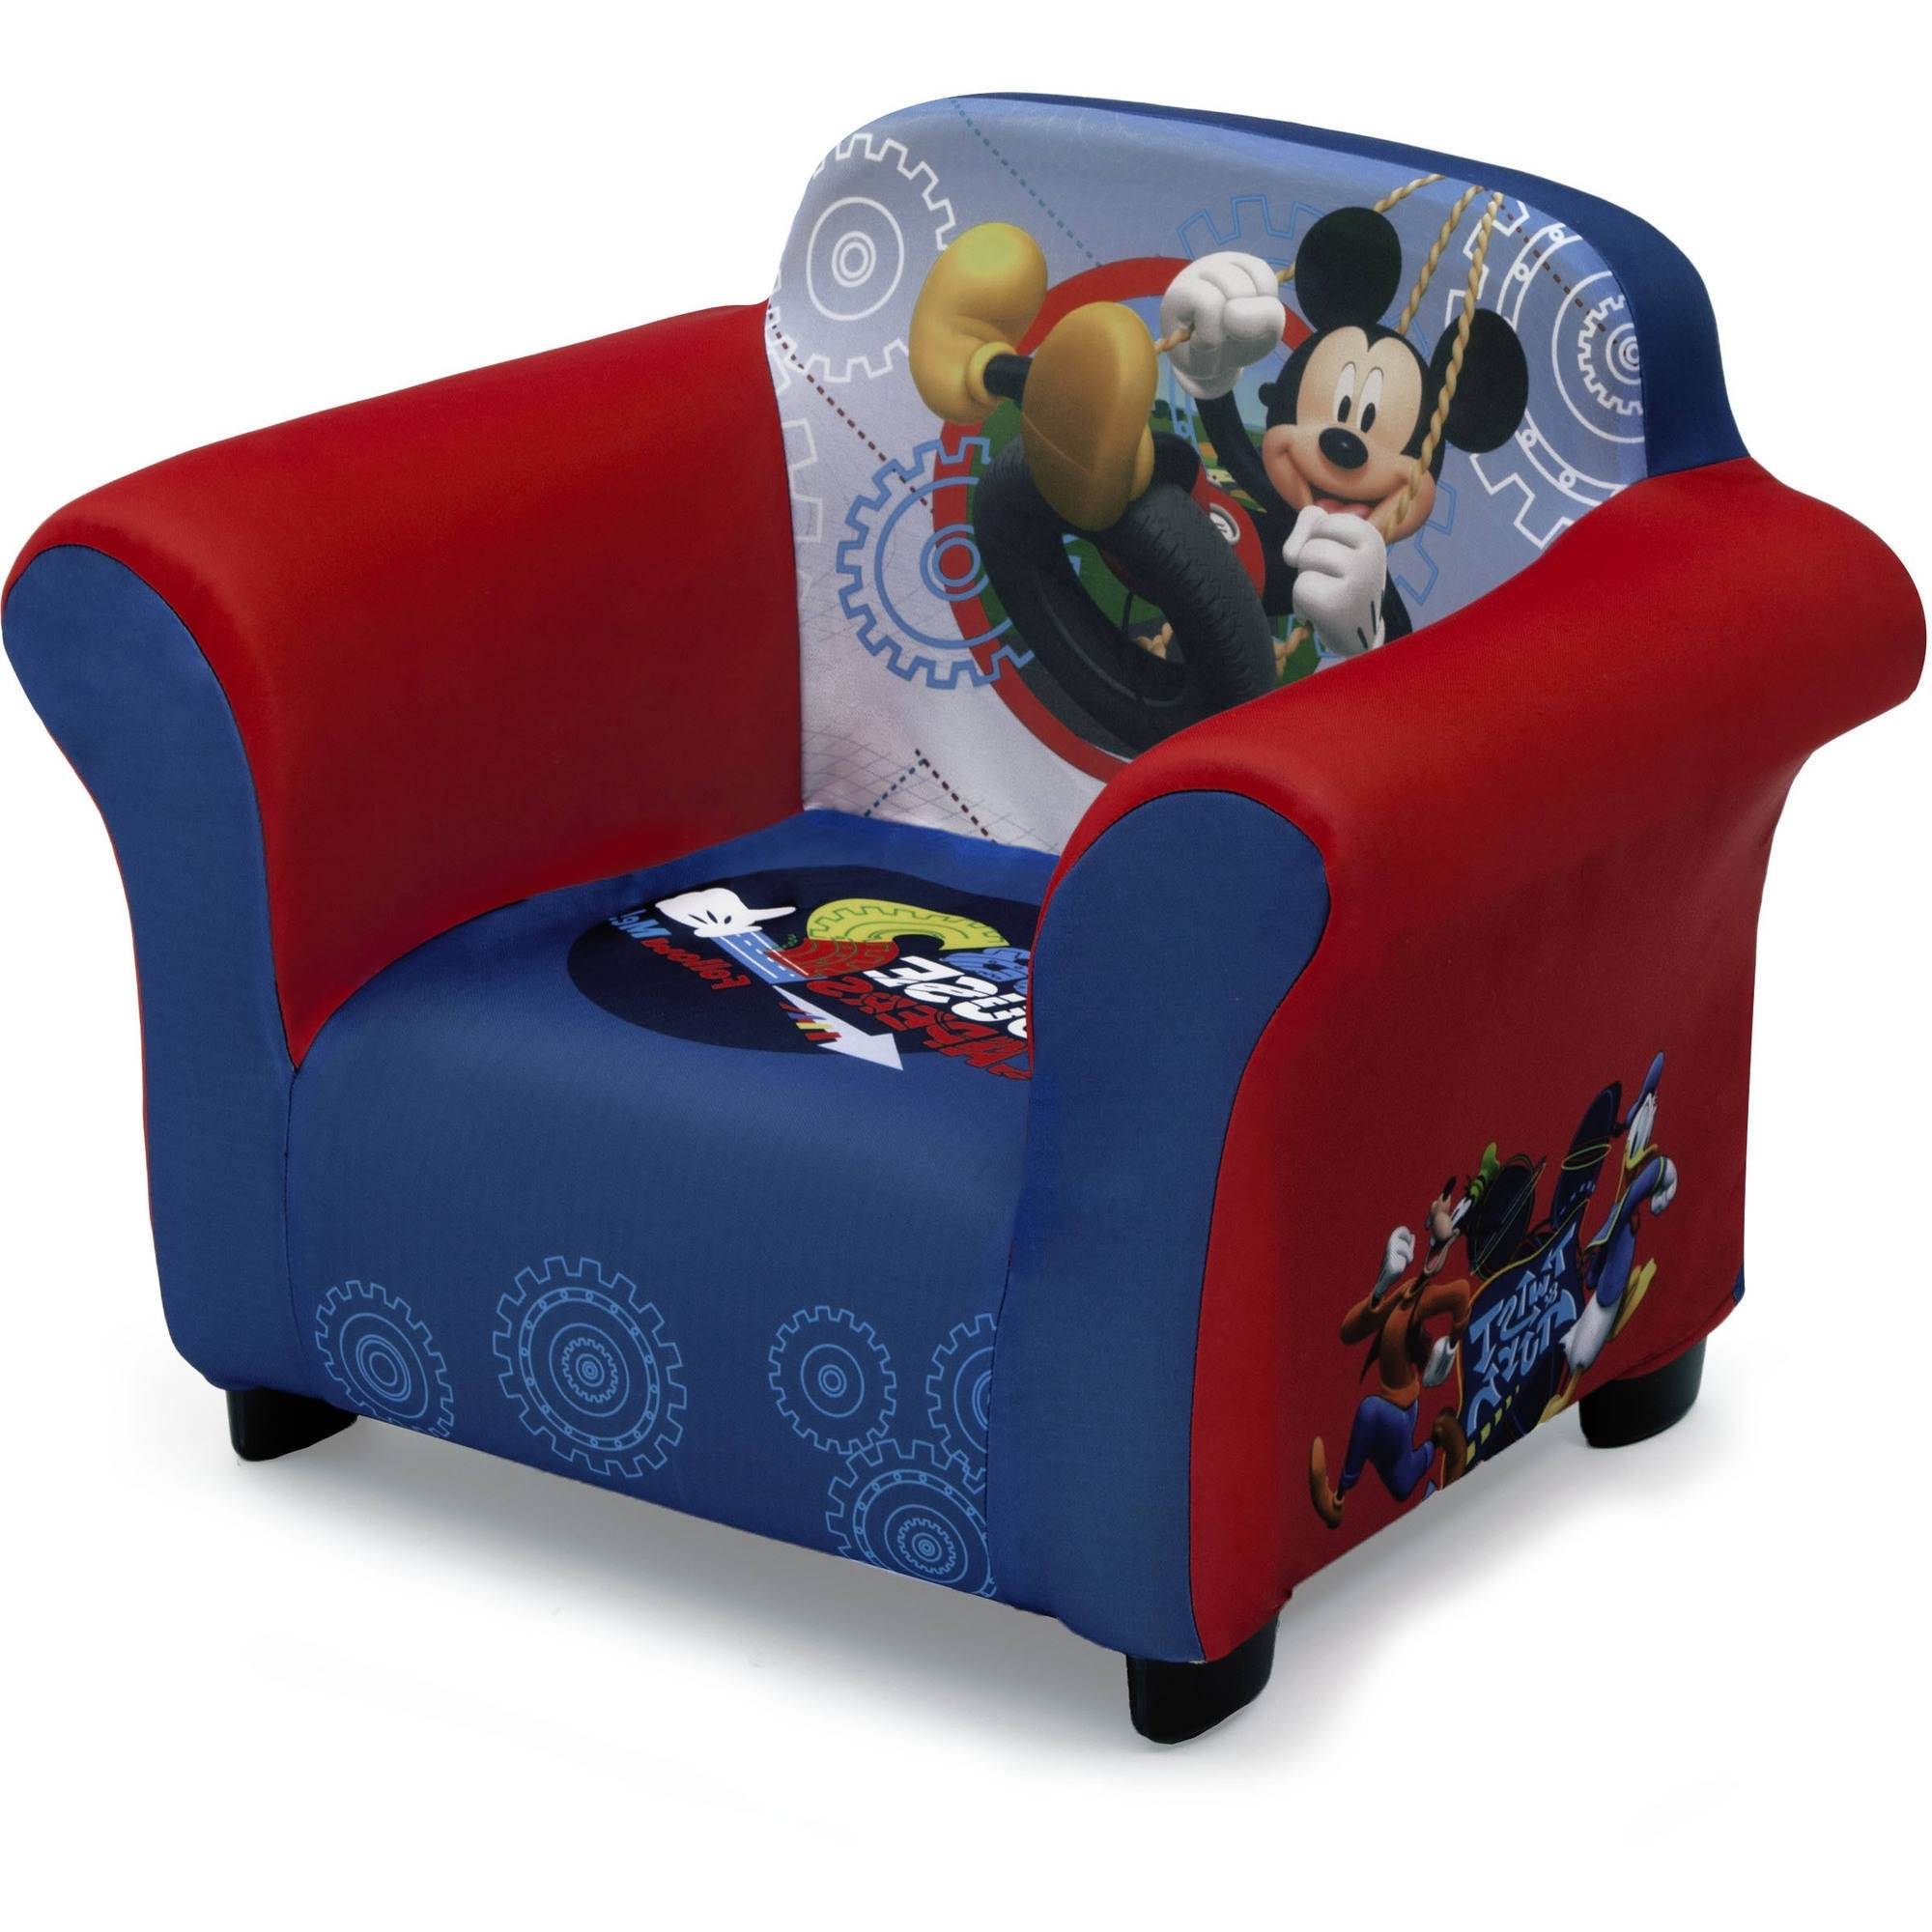 Most Recent Personalized Kids Chairs And Sofas Throughout Uncategorized : Personalized  Kids Chairs For Greatest Arm